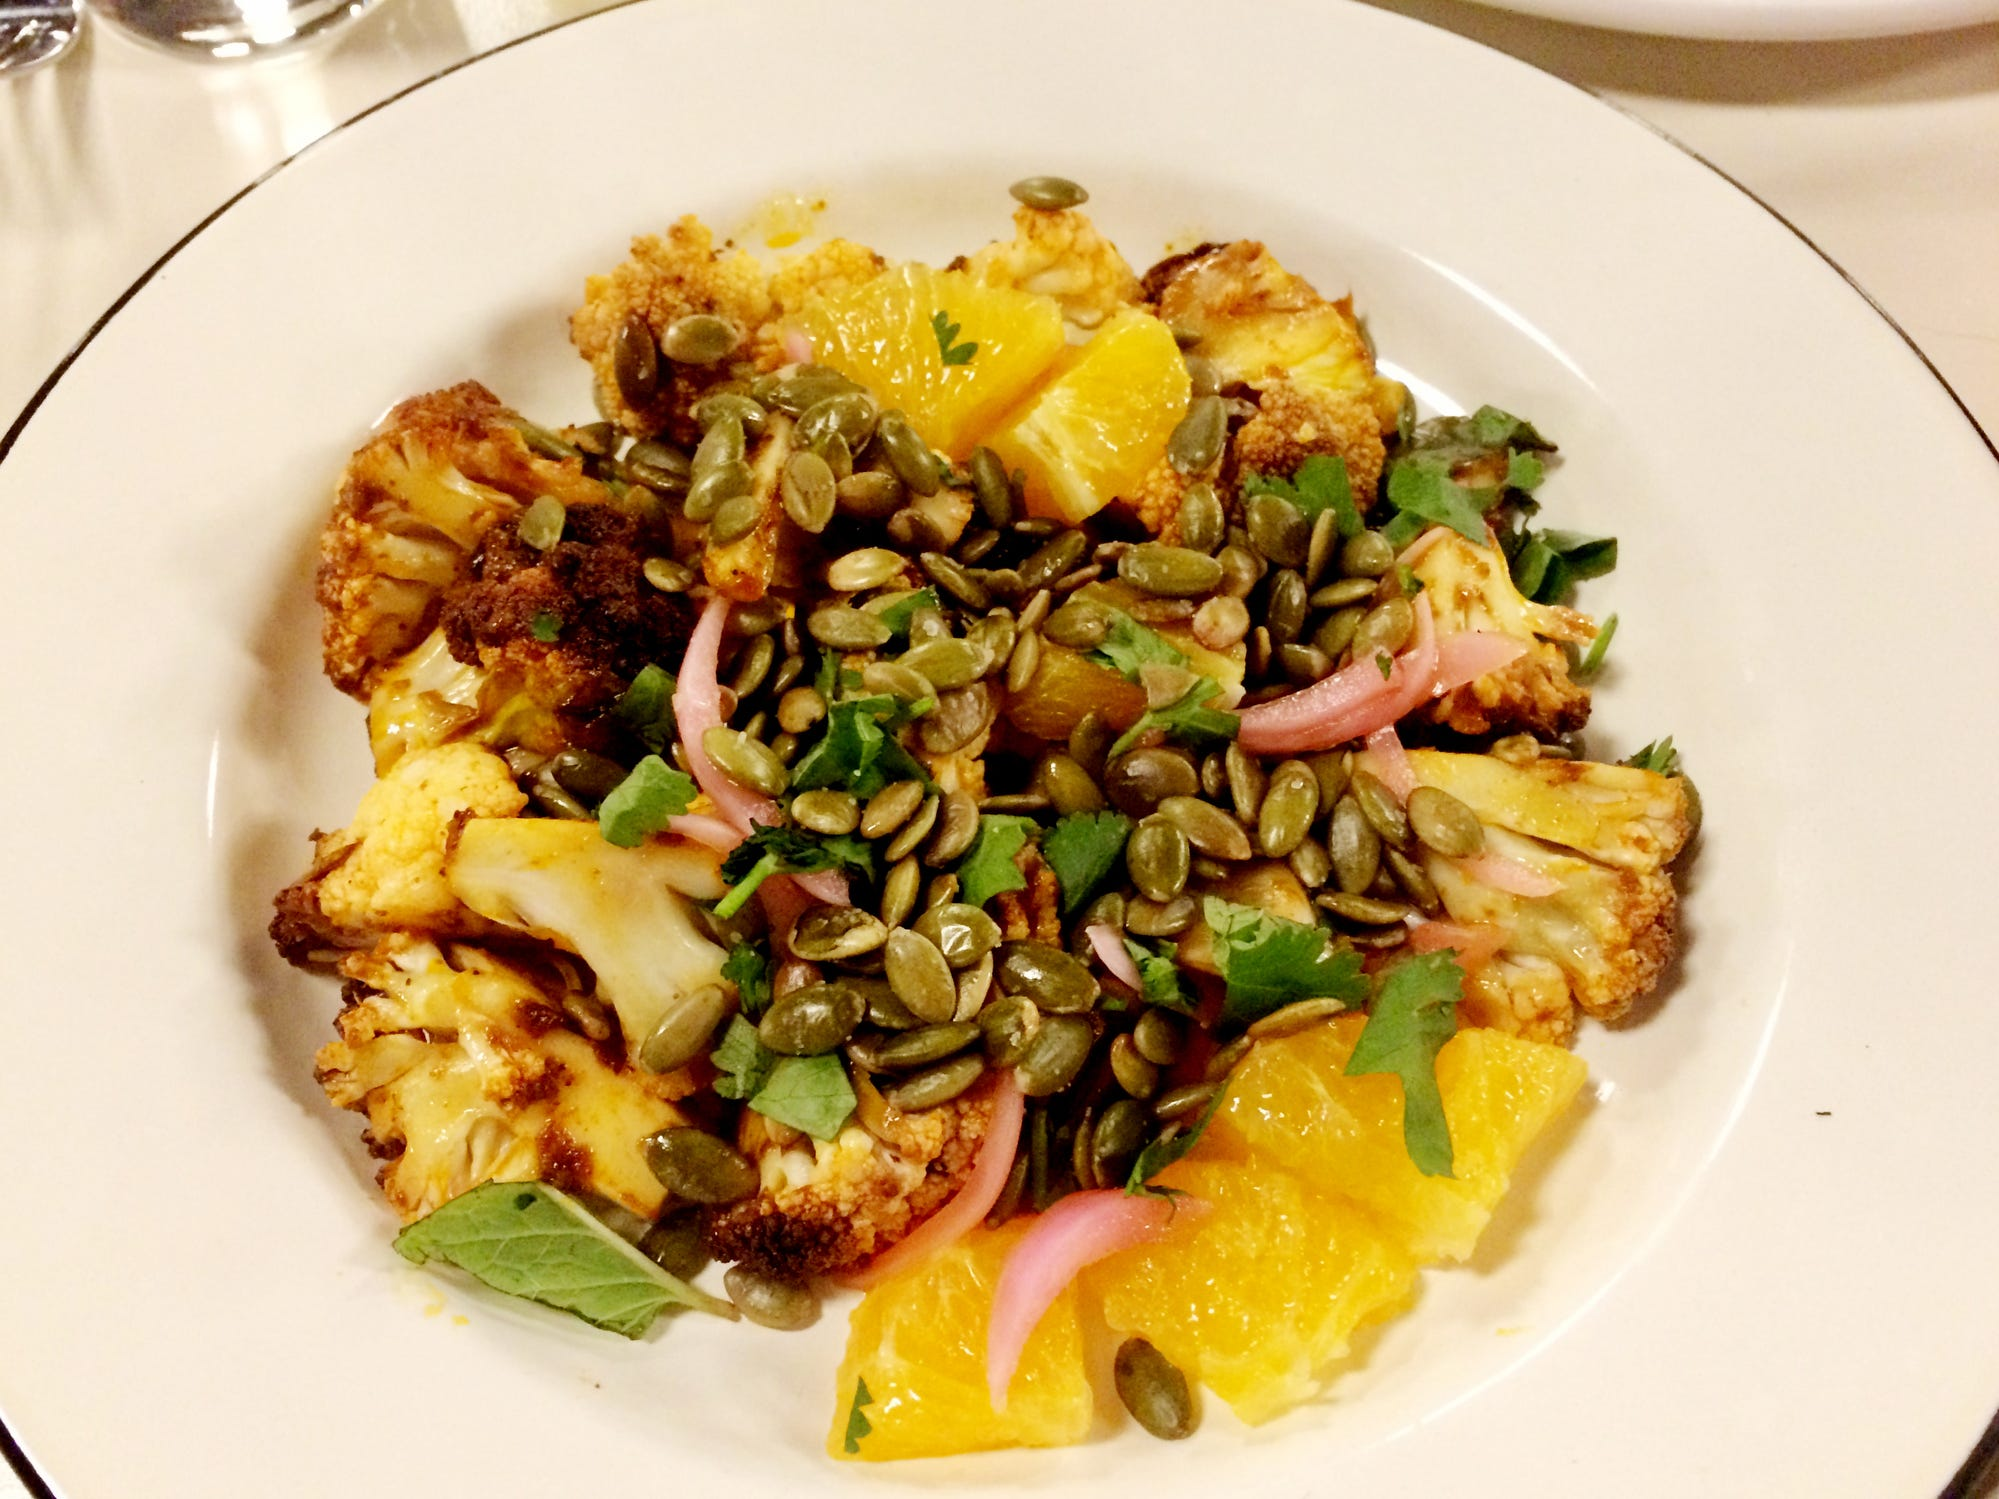 Roasted cauliflower with orange segments, pickled red onion and pepitas at Mop/Broom Mess Hall.